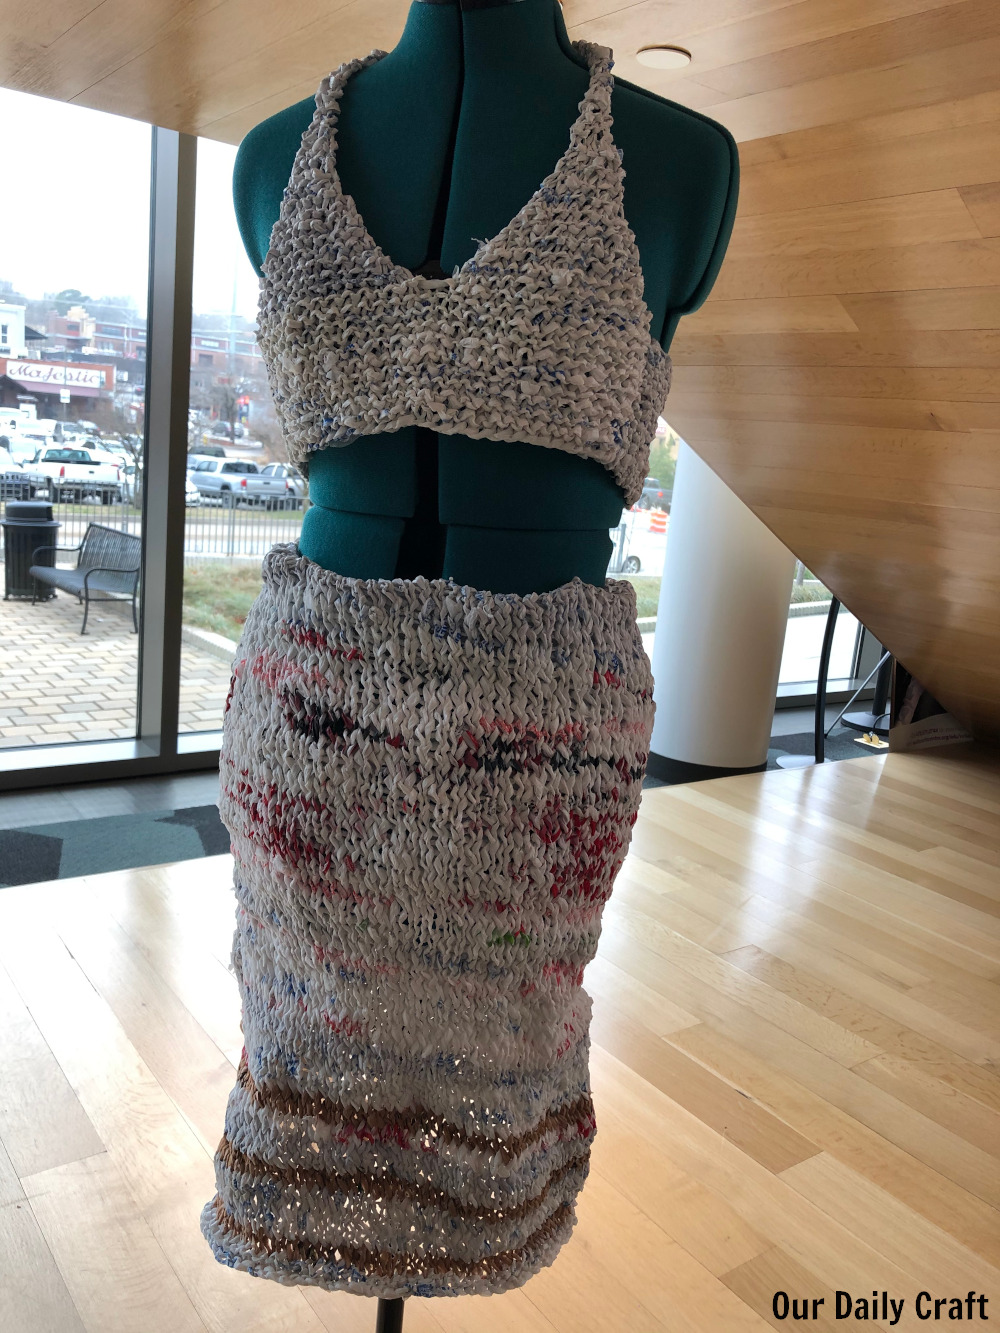 Why I Knit a Plastic Dress